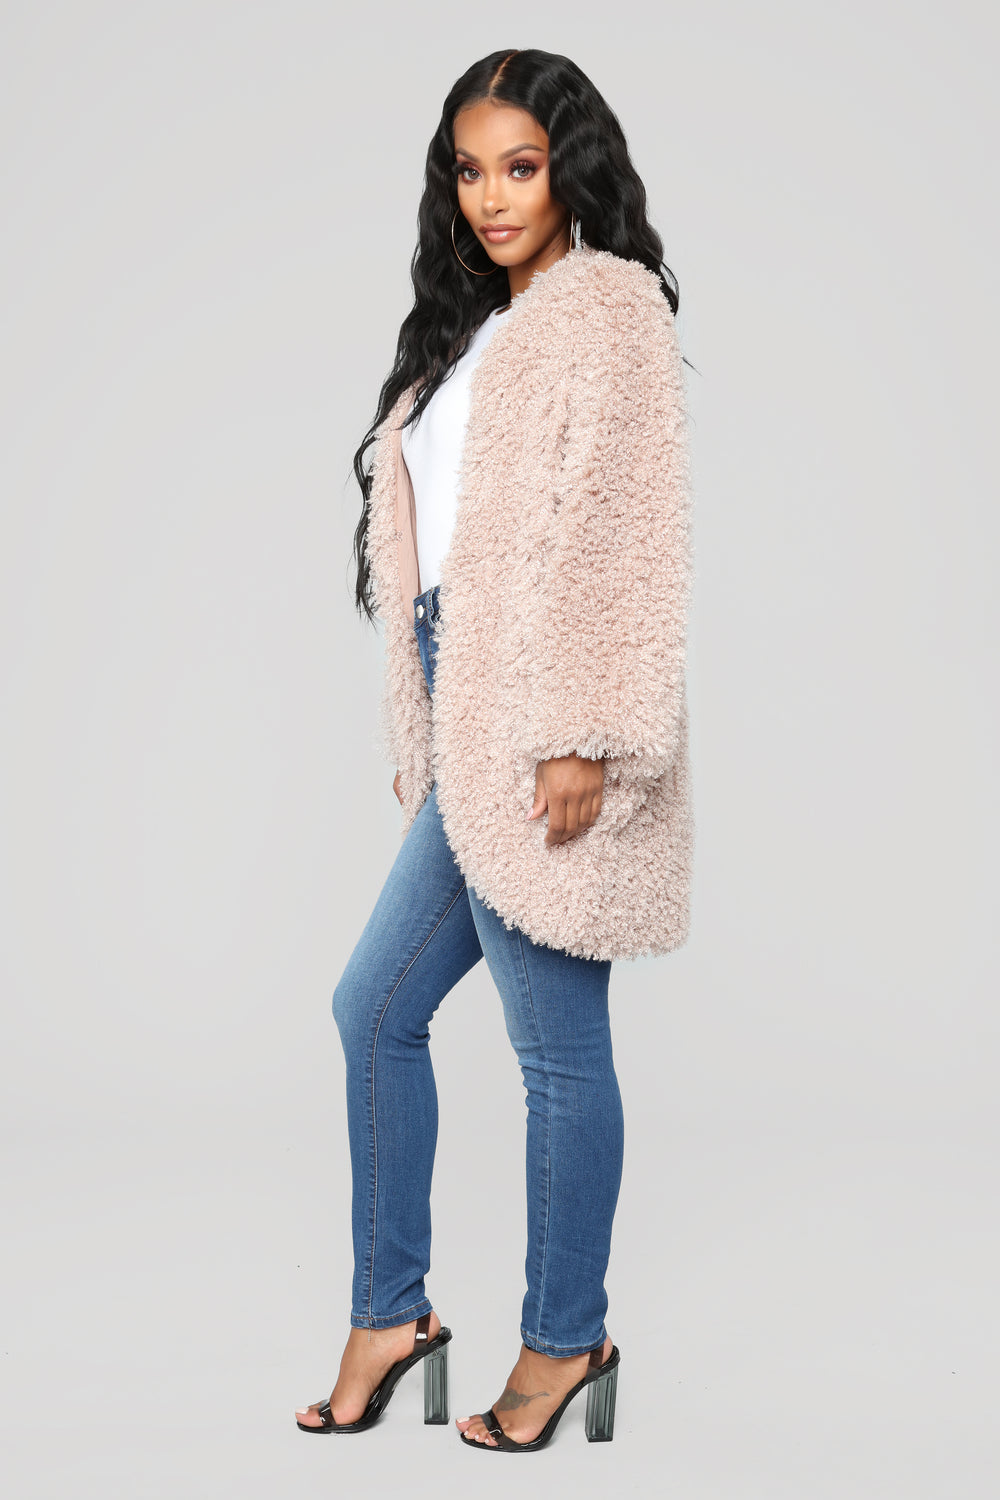 Warm Embrace Faux Fur Jacket - Taupe